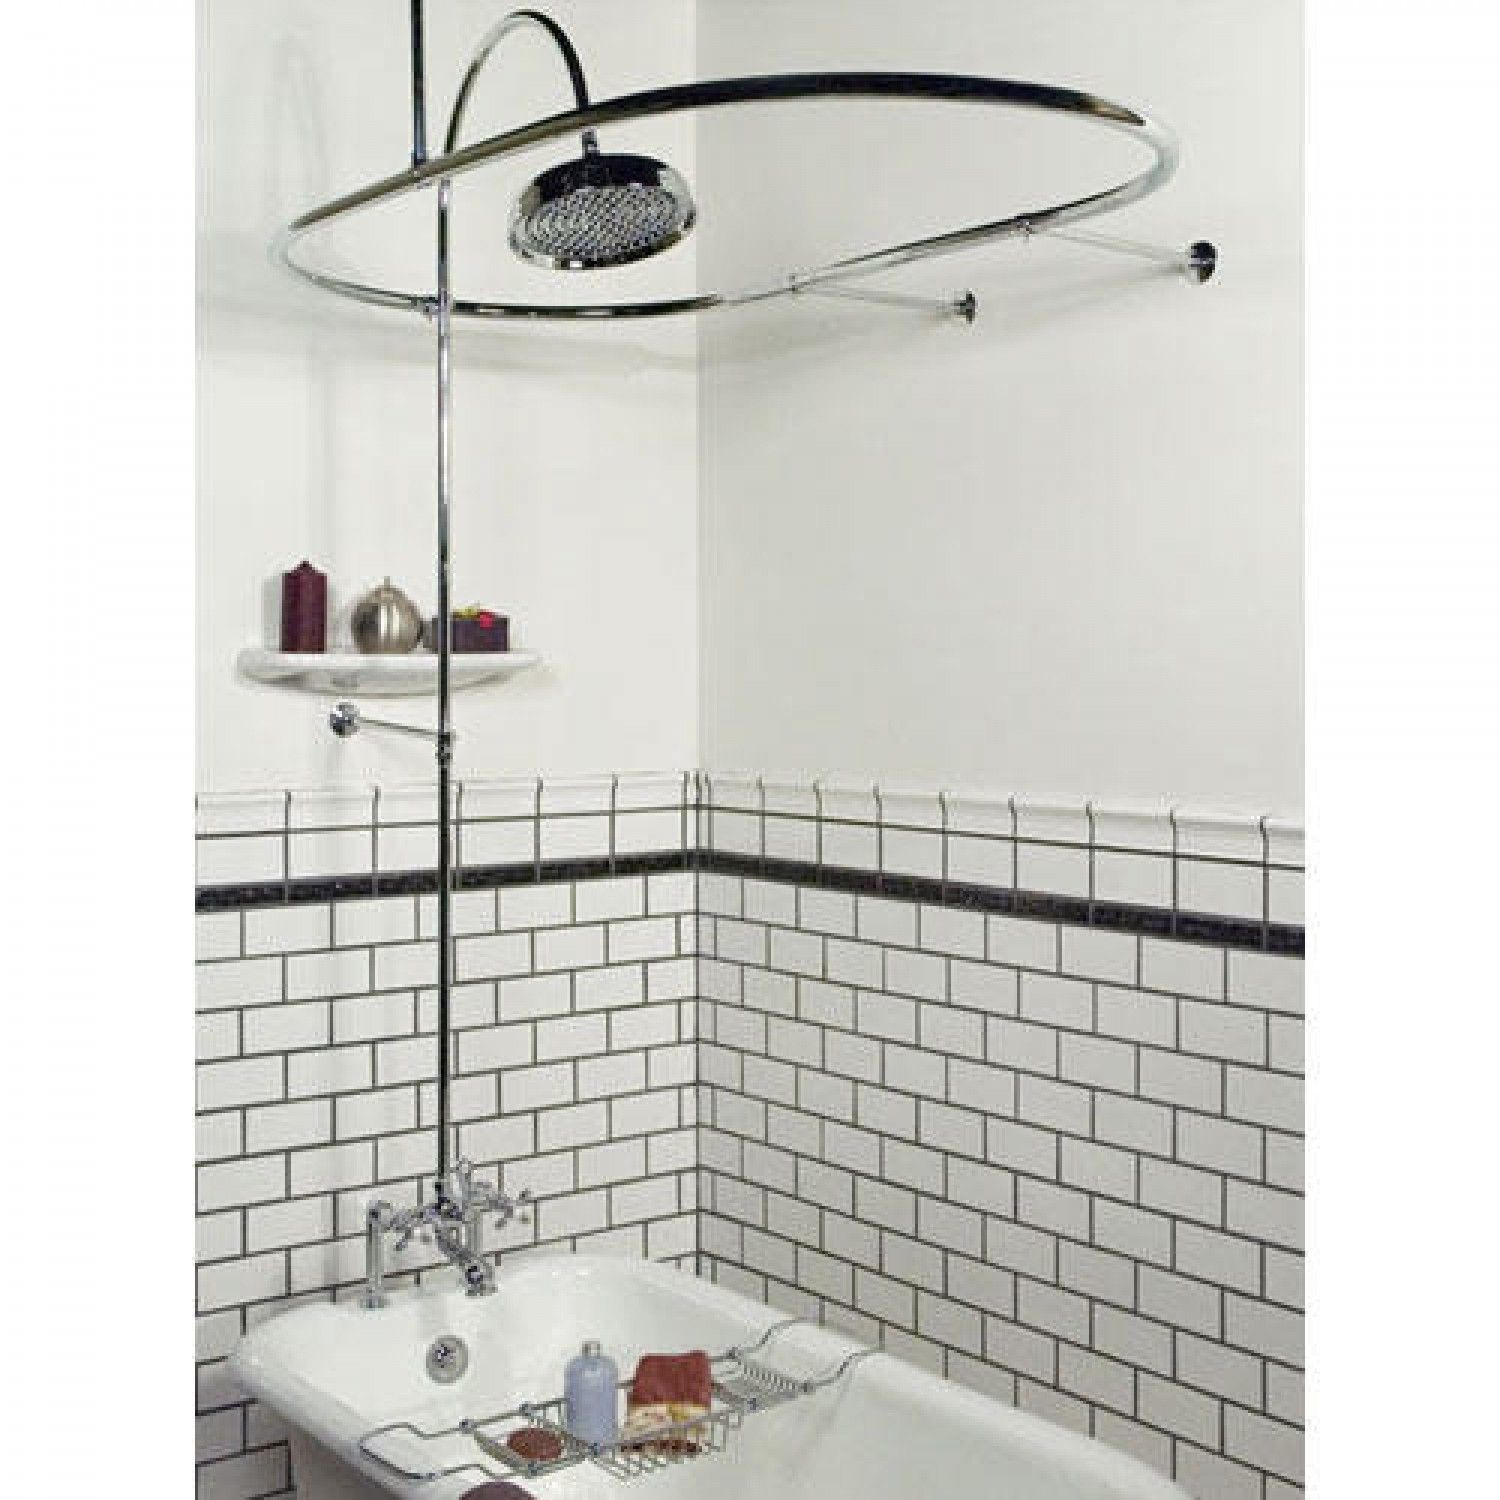 Clawfoot tub rain shower - Sheffield Deck Mount Hotel Style Solid Brass Shower Conversion Kit Clawfoot Tub